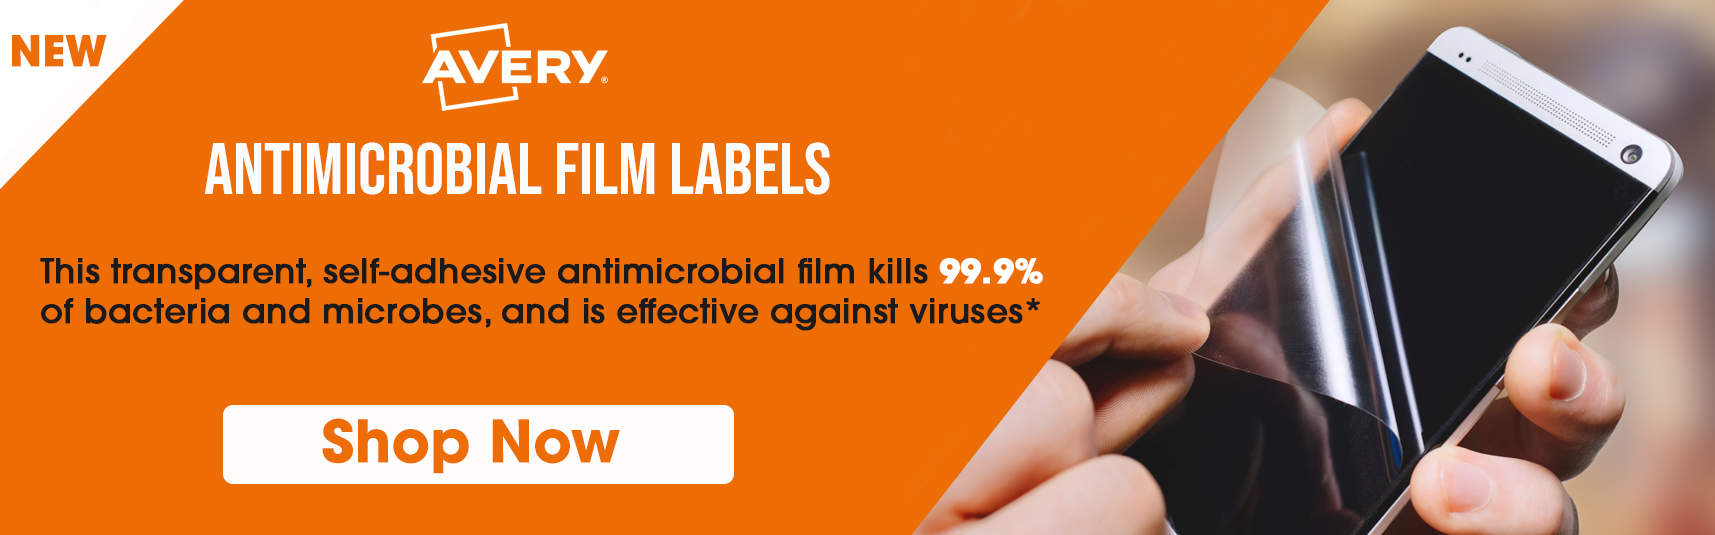 Antimicrobial Film Labels